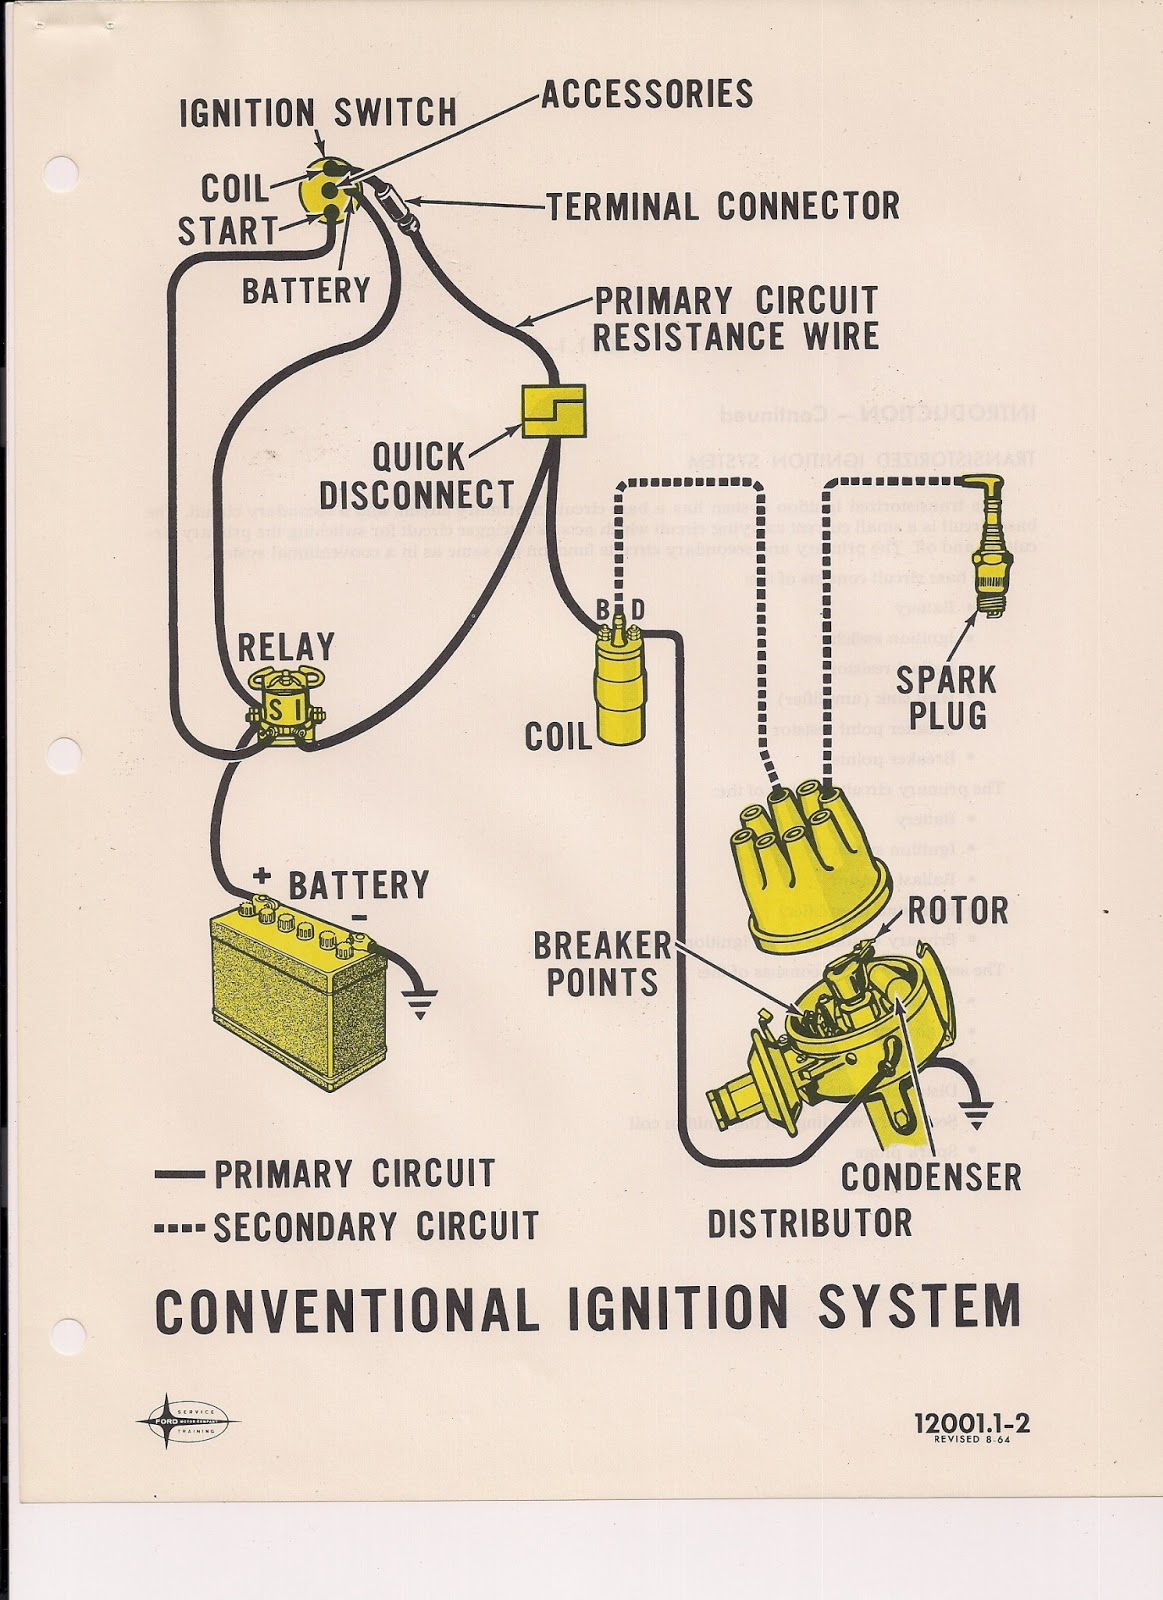 Ignition+1 the care and feeding of ponies mustang ignition system 1965 and 1966 1965 mustang wiring harness diagram at fashall.co